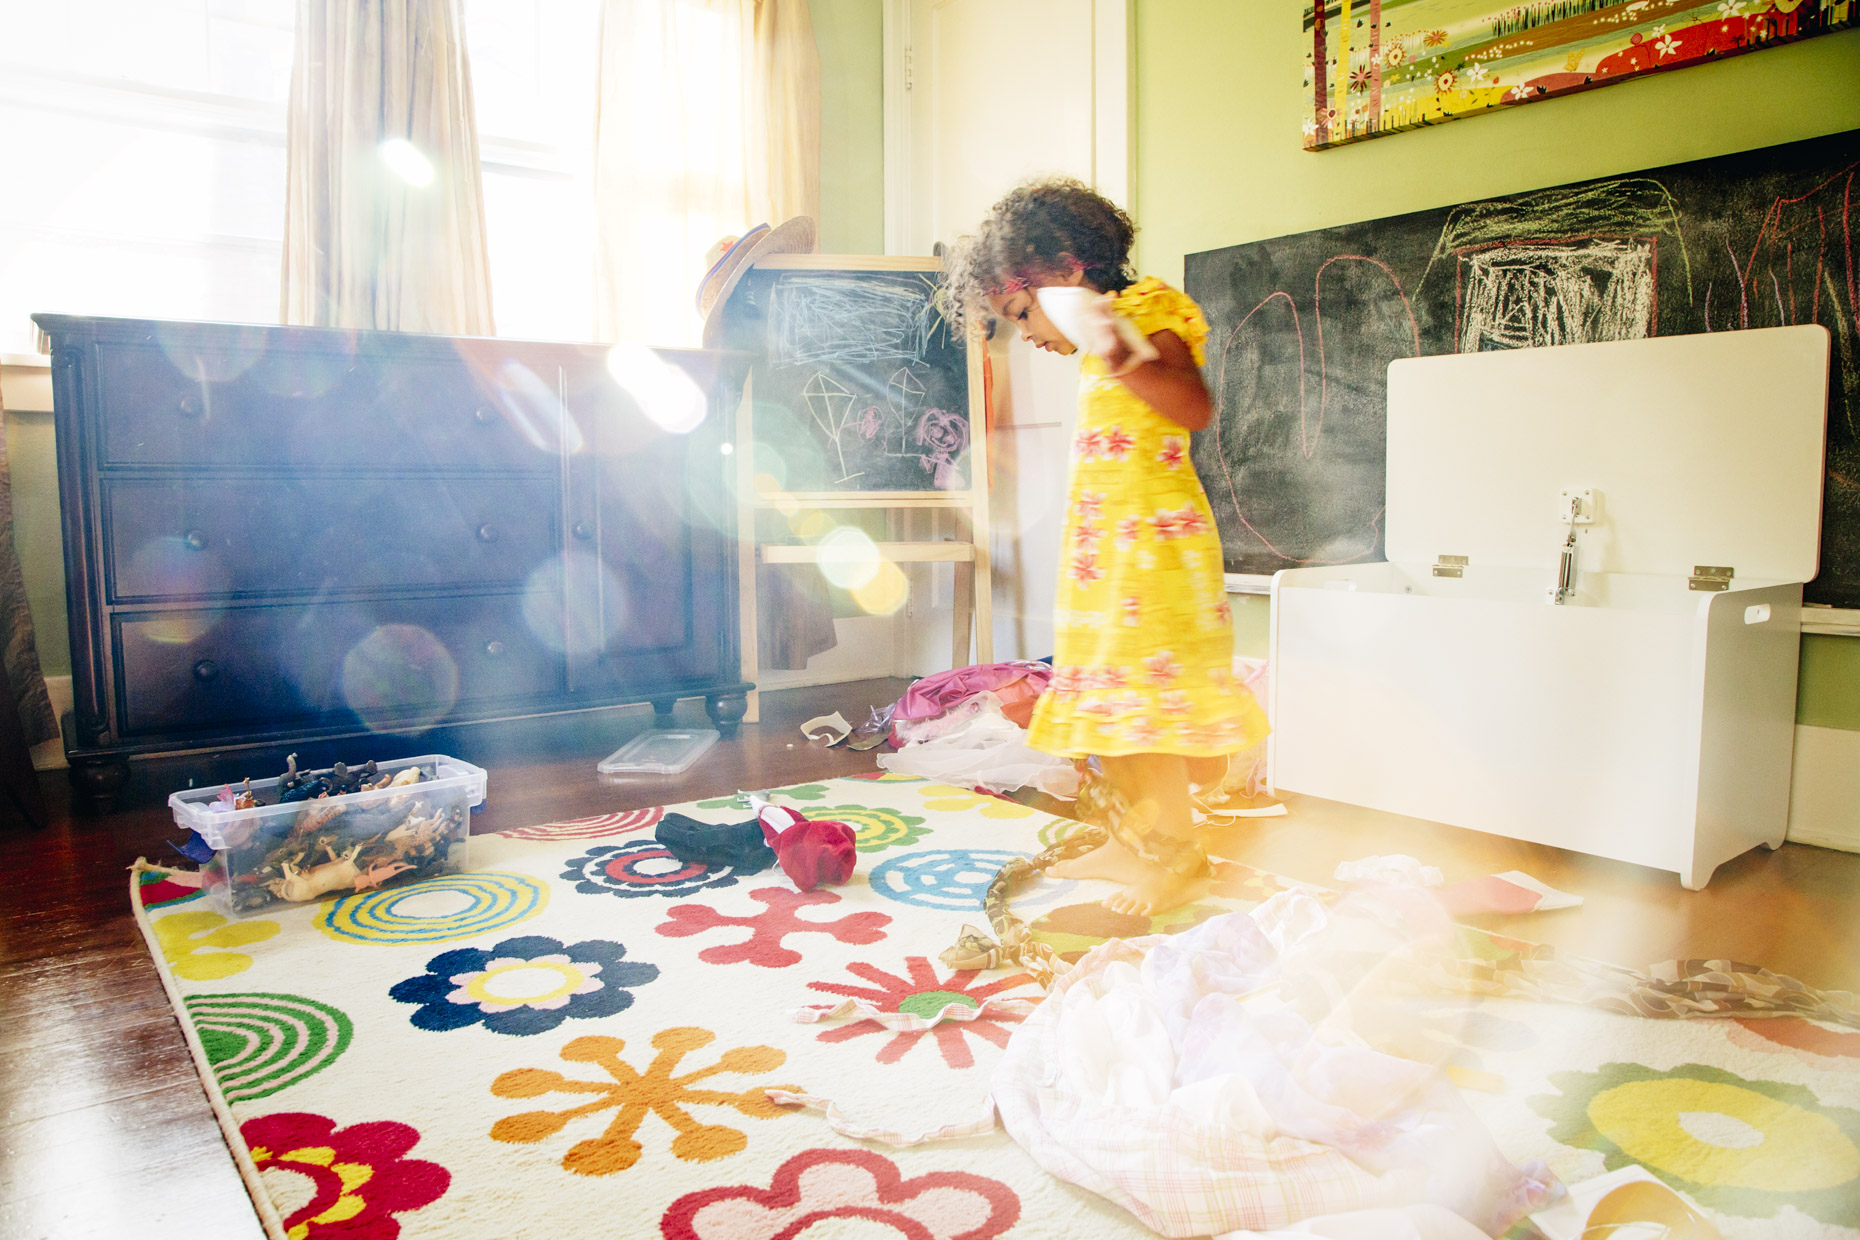 Girl playing dress-up in sunlight filled bedroom